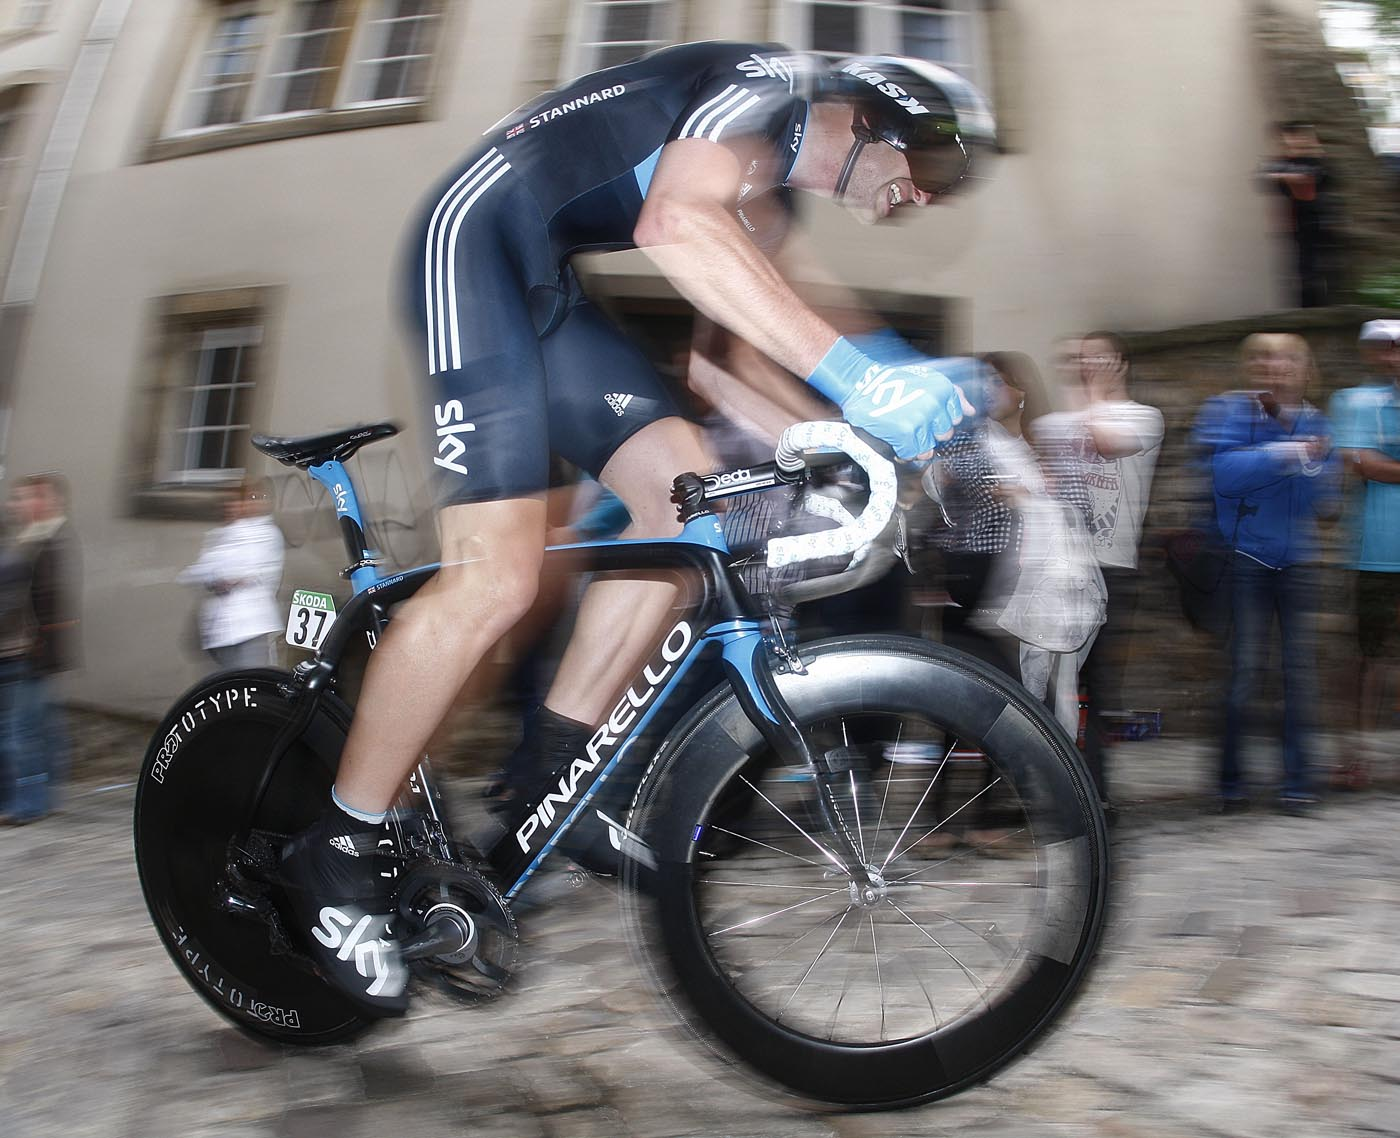 Ian Stannard, 11th, Tour of Luxembourg 2011, prologue